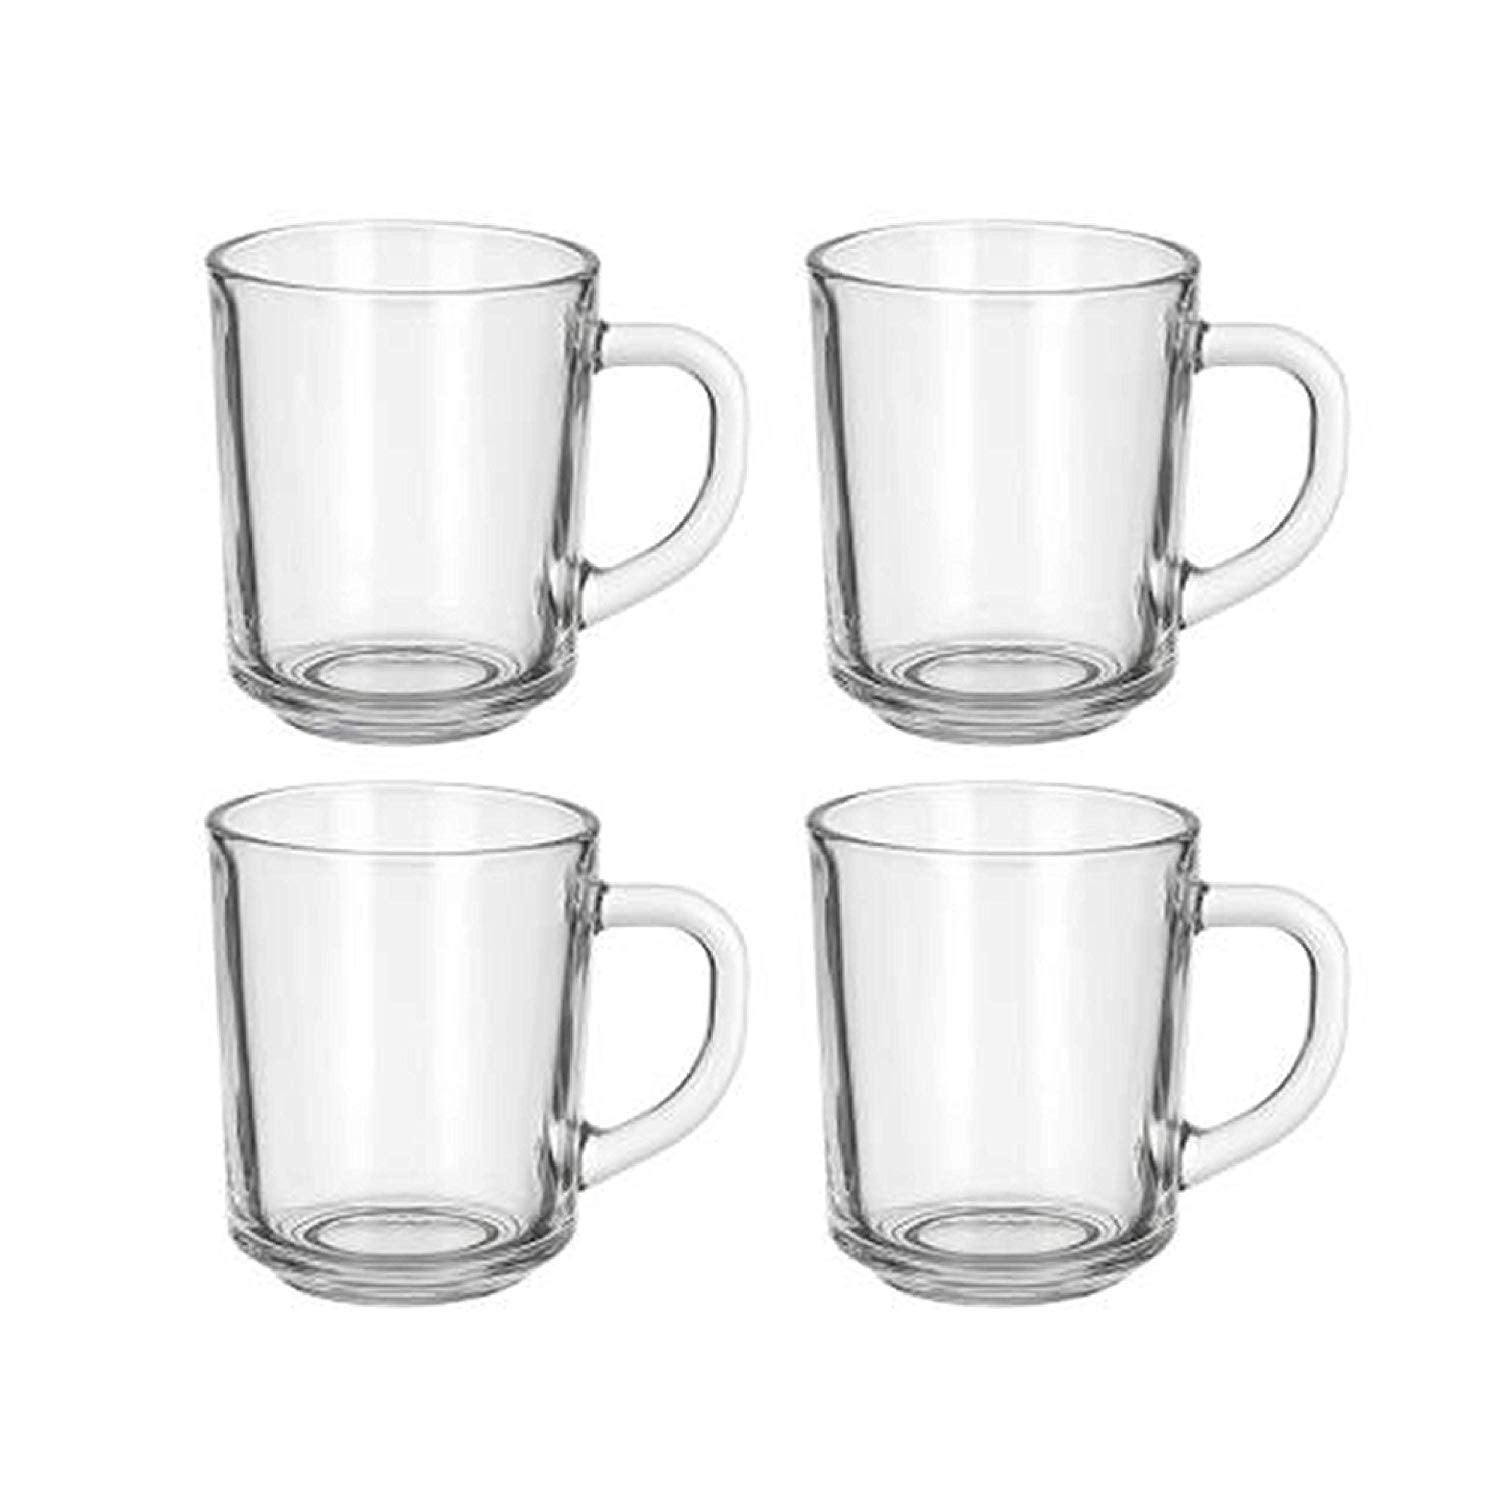 Cafe Glass Coffee Mugs Clear 8 Oz Great For Tea Coffee Juice Mulled Wine And More Overstock 30259630